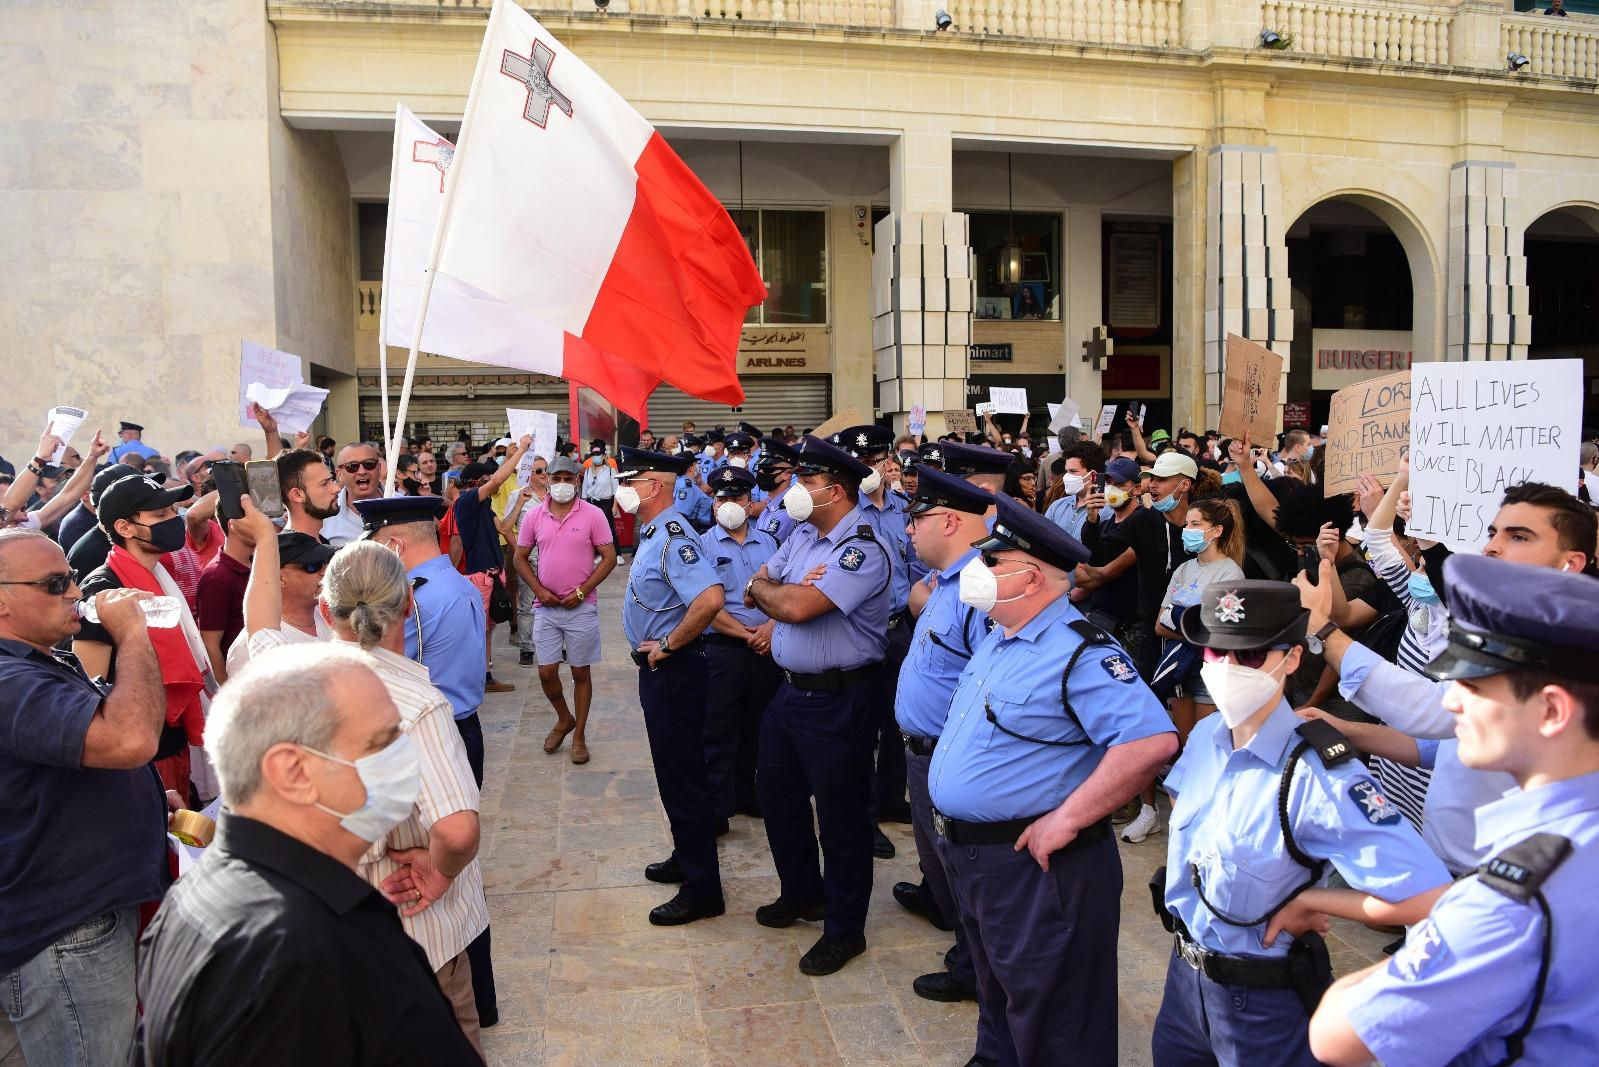 Police officers keep a close eye on anti-immigration protesters. Photo: Mark Zammit Cordina